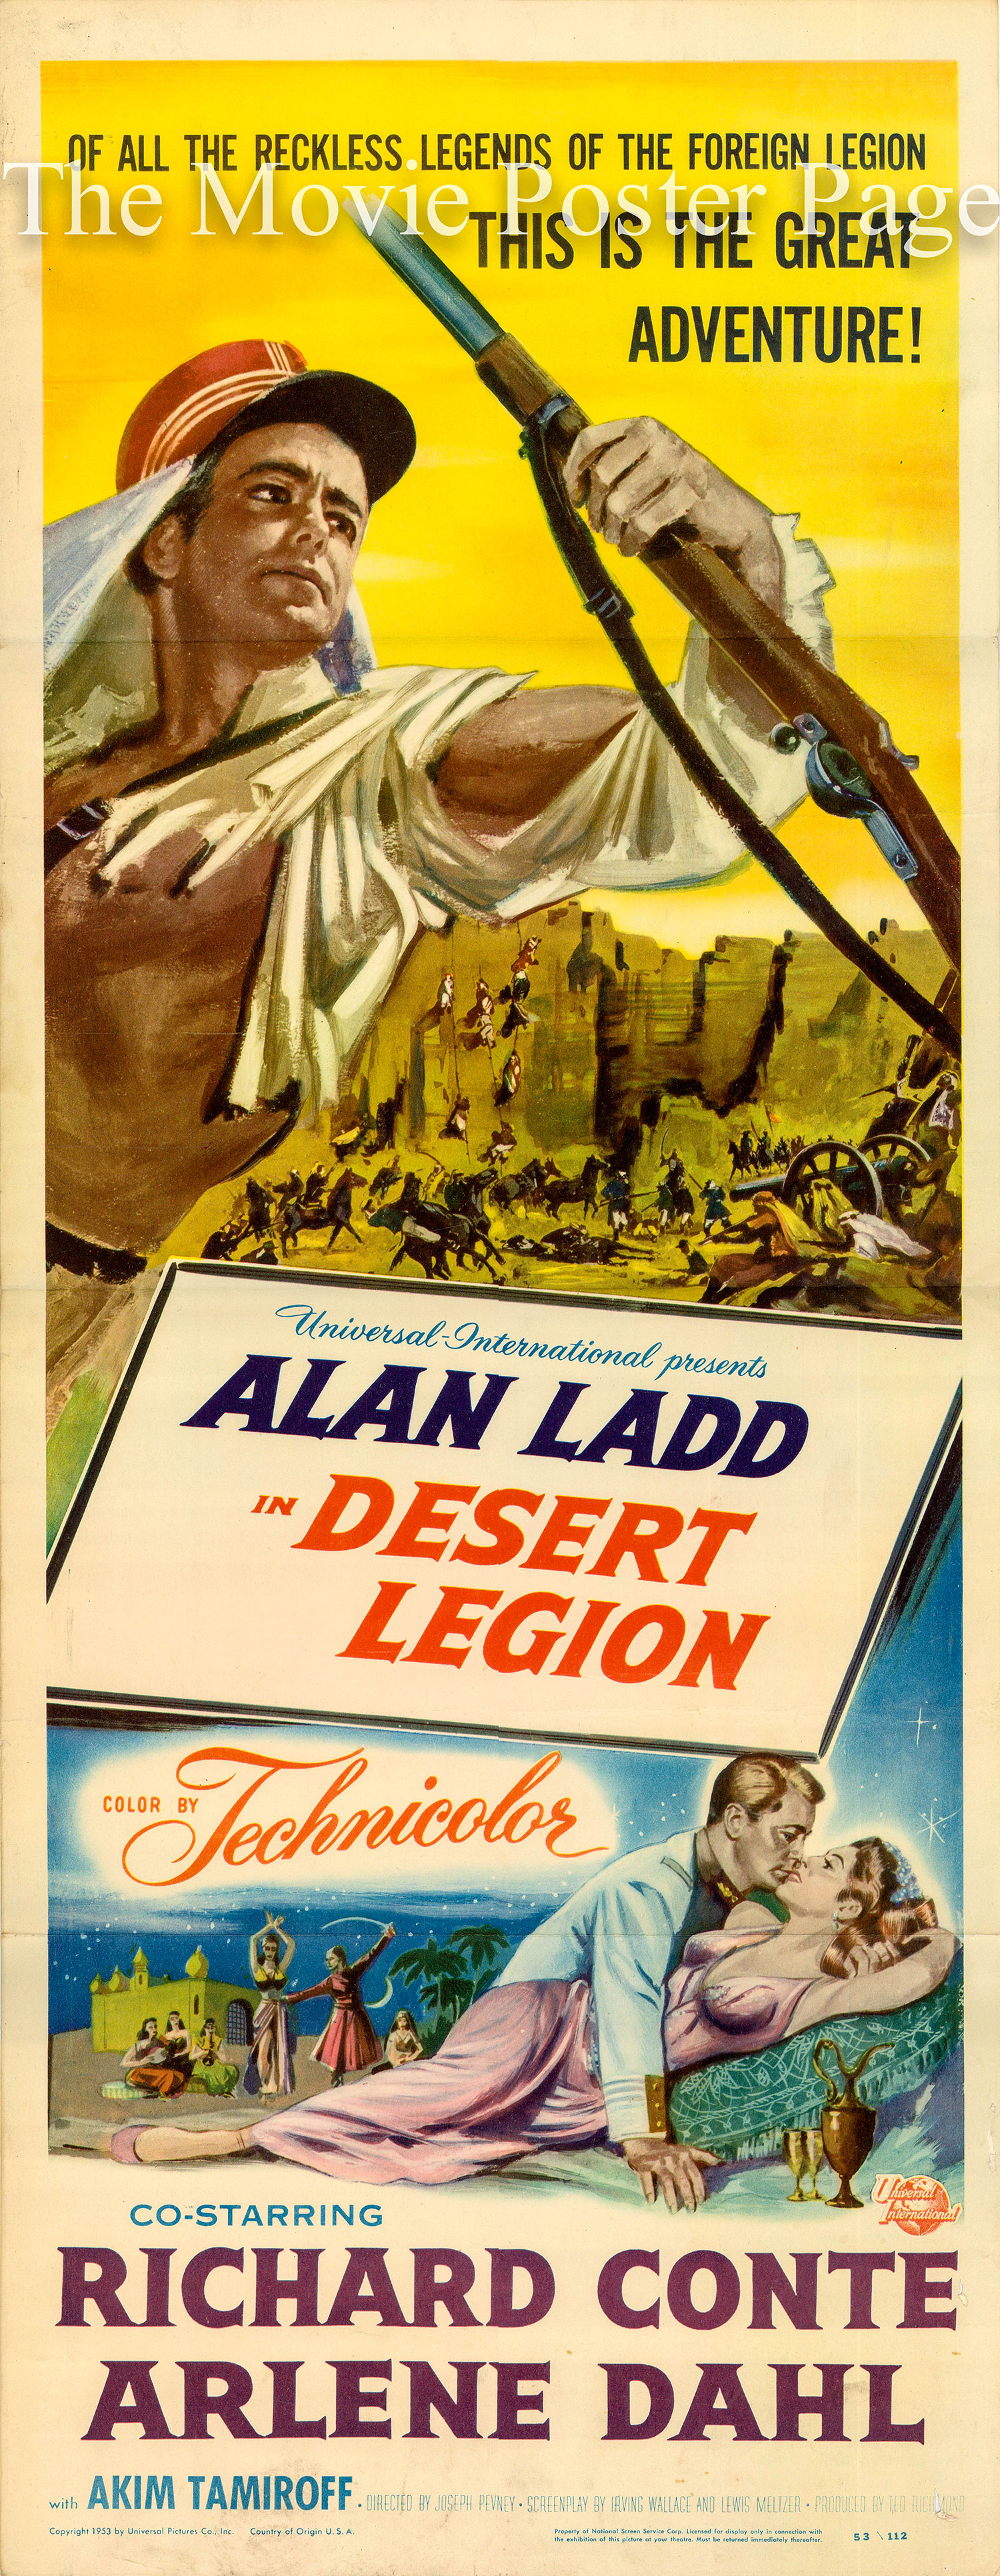 Pictured is a US insert promotional poster for the 1953 Joseph Pevney film Desert Legion starring Alan Ladd.